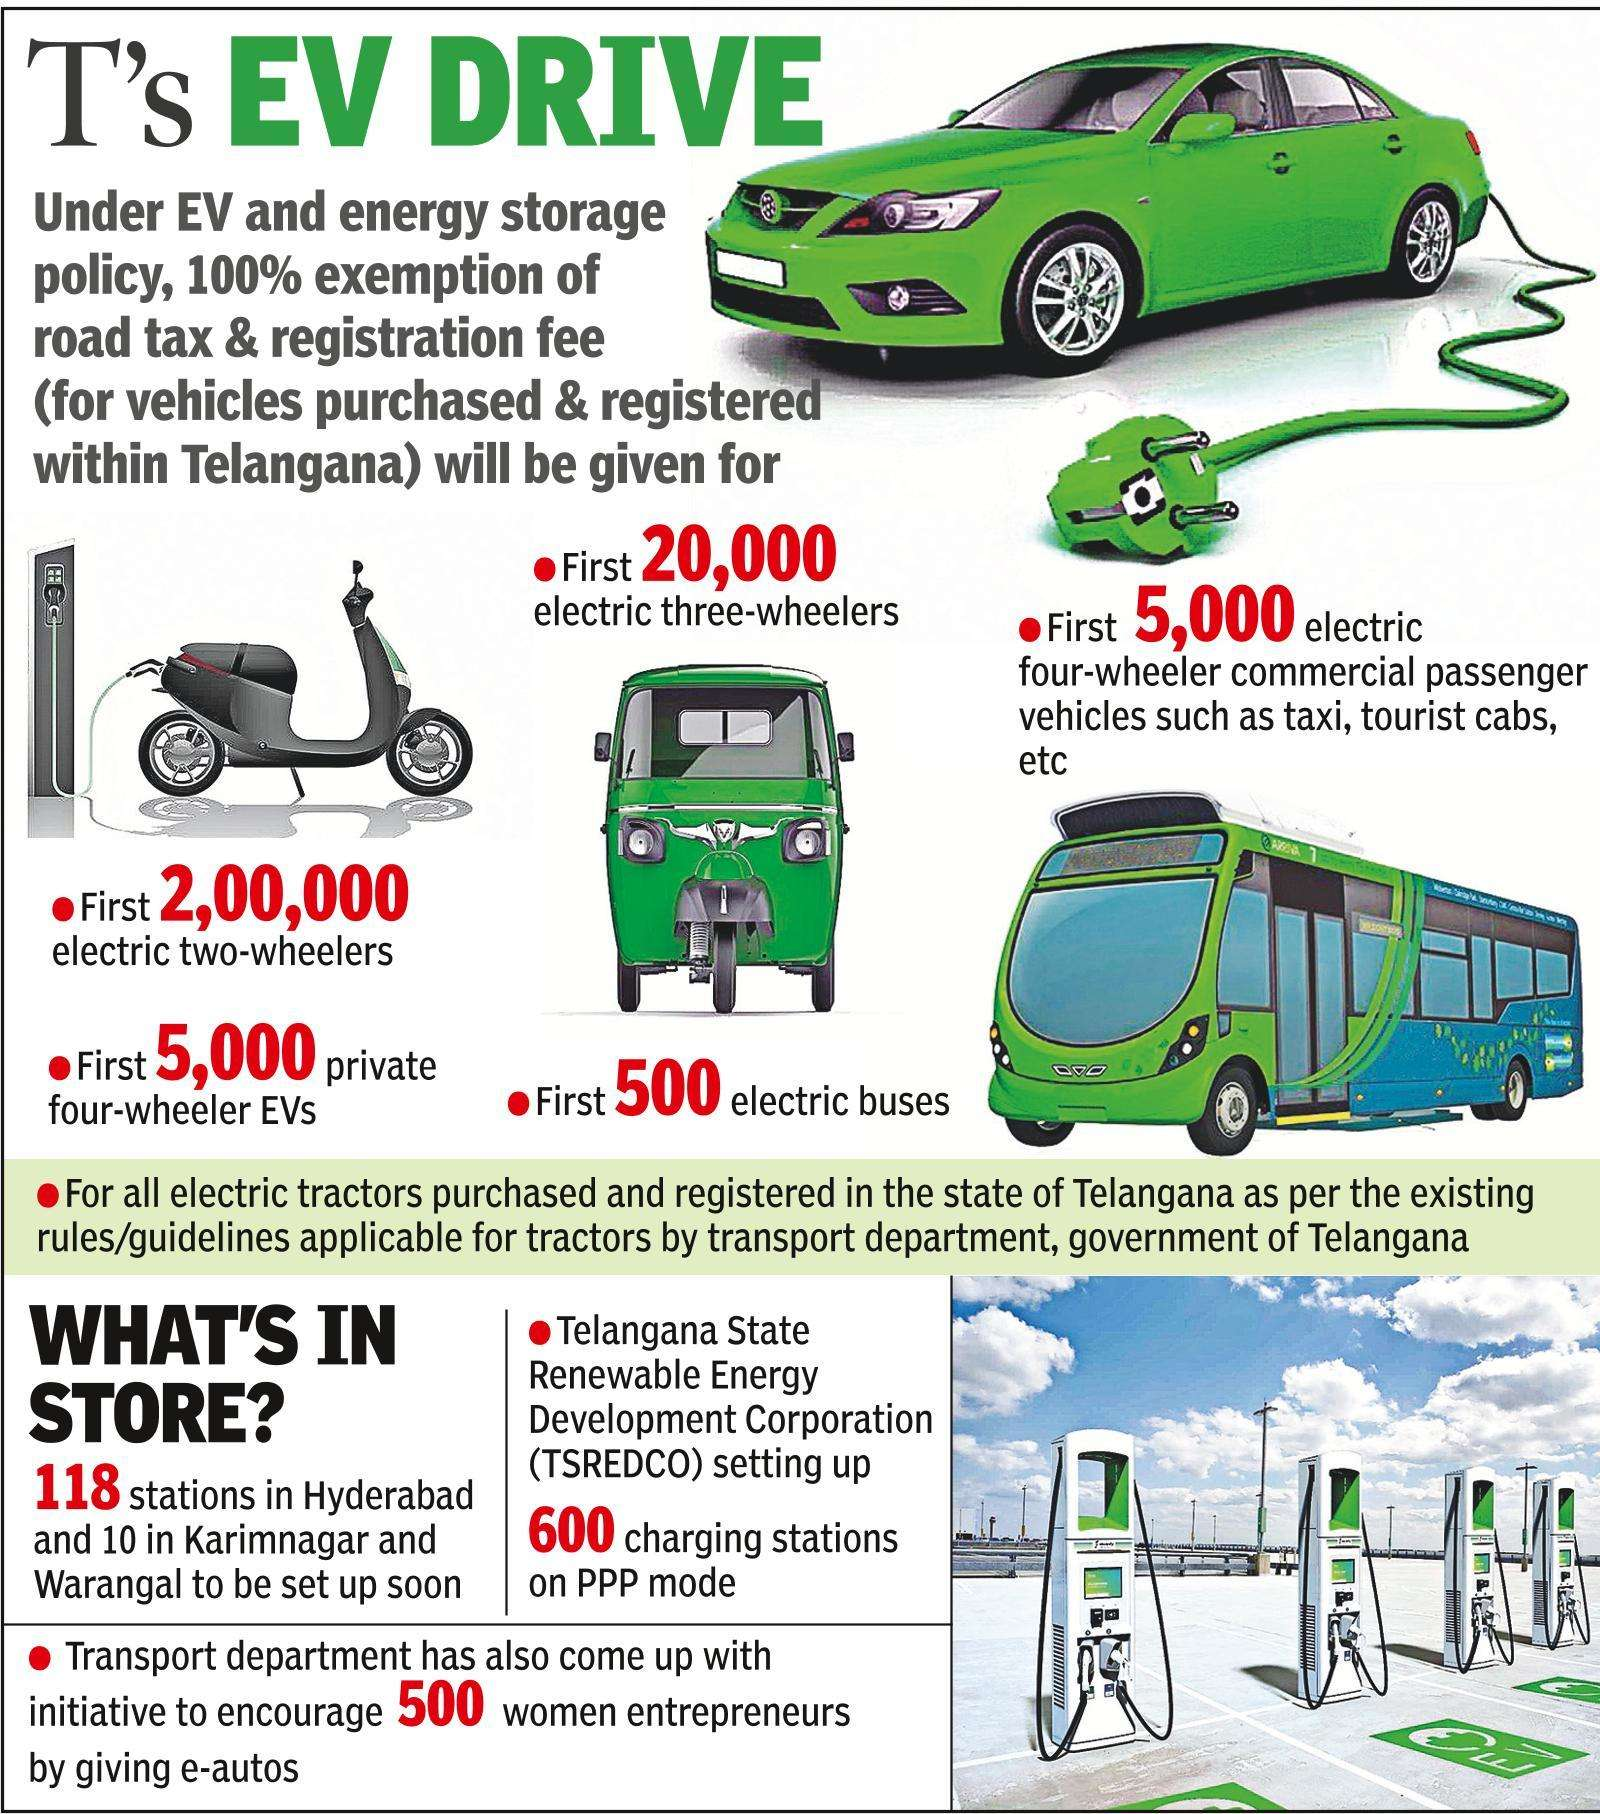 Housing societies make a dash for setting up EV charging infra